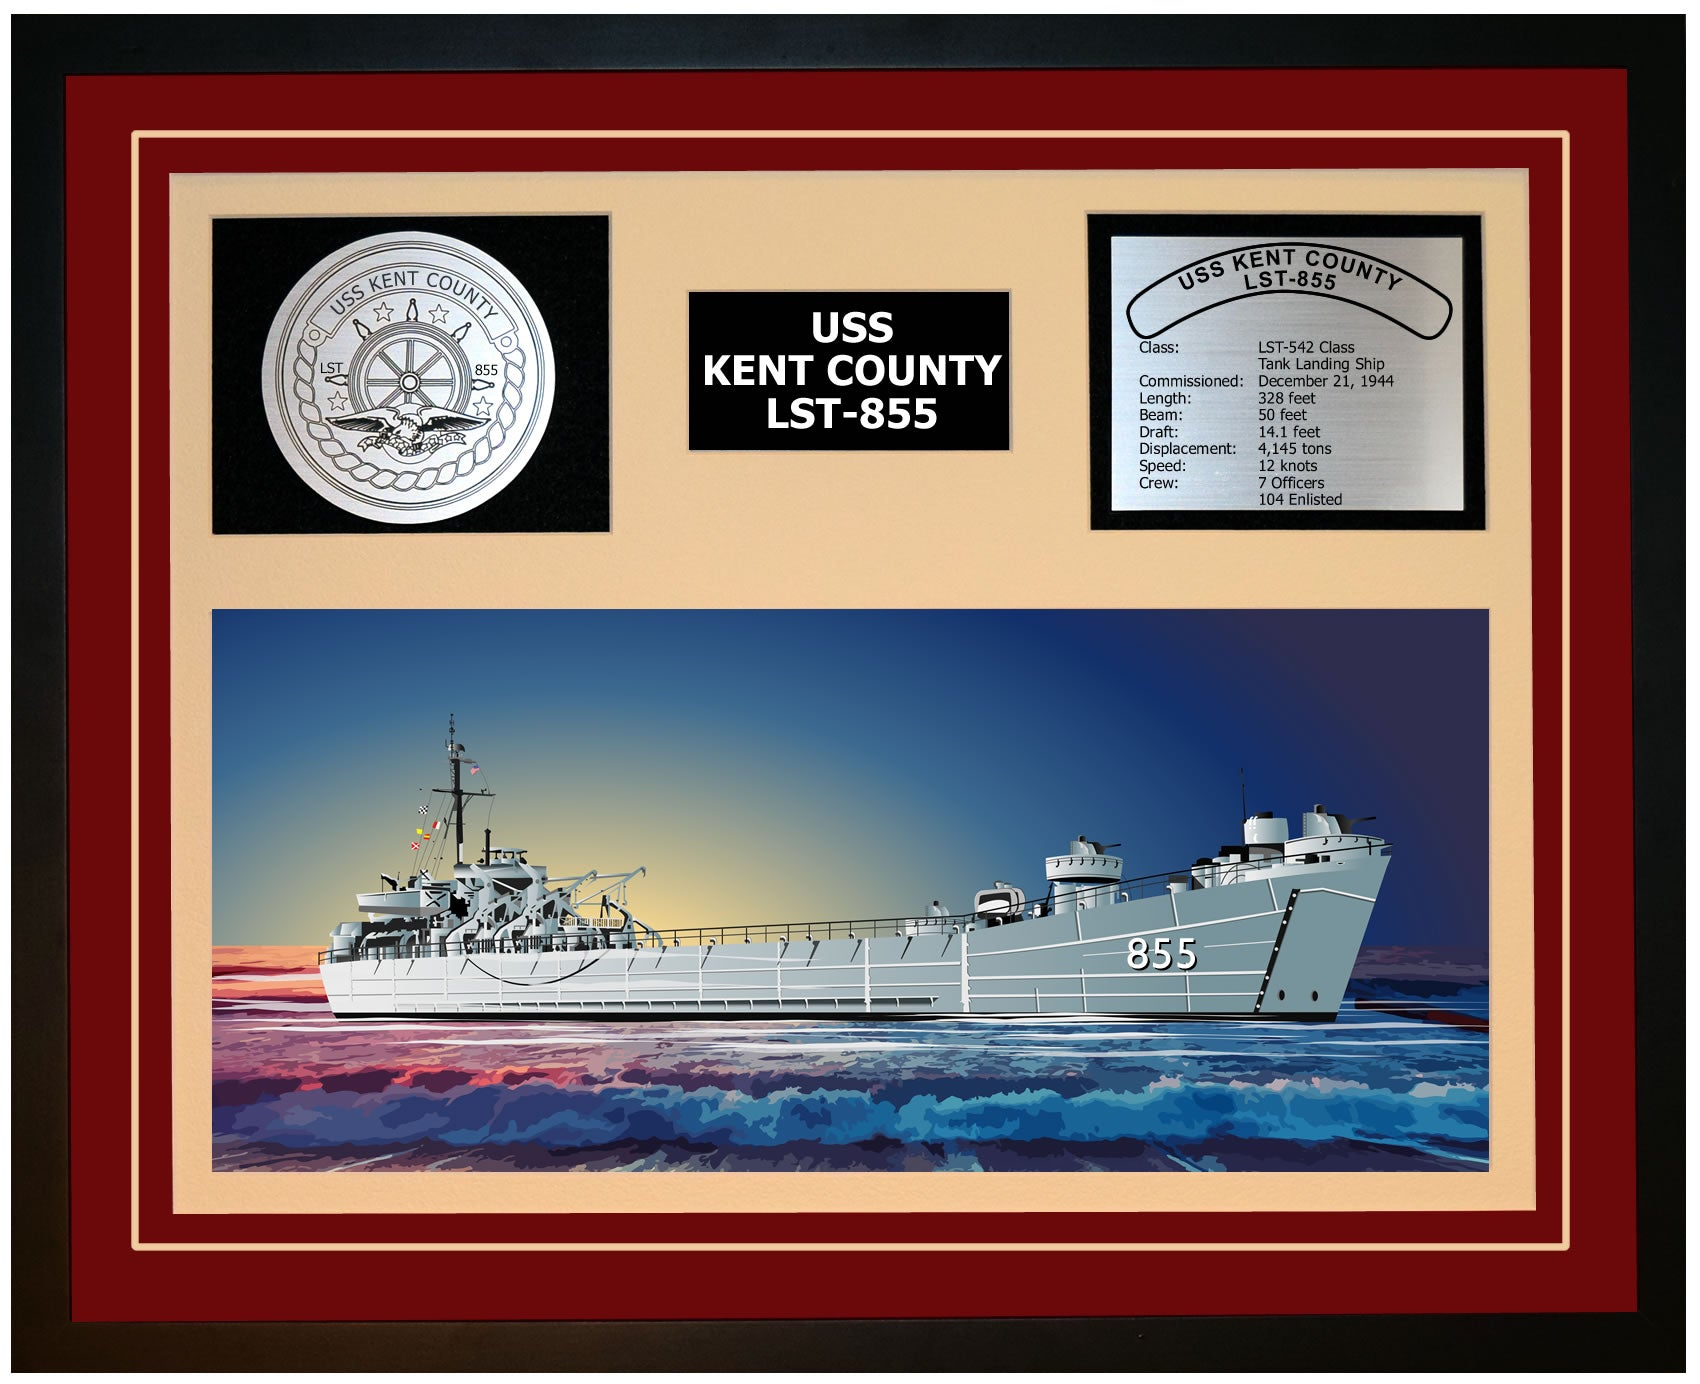 USS KENT COUNTY LST-855 Framed Navy Ship Display Burgundy